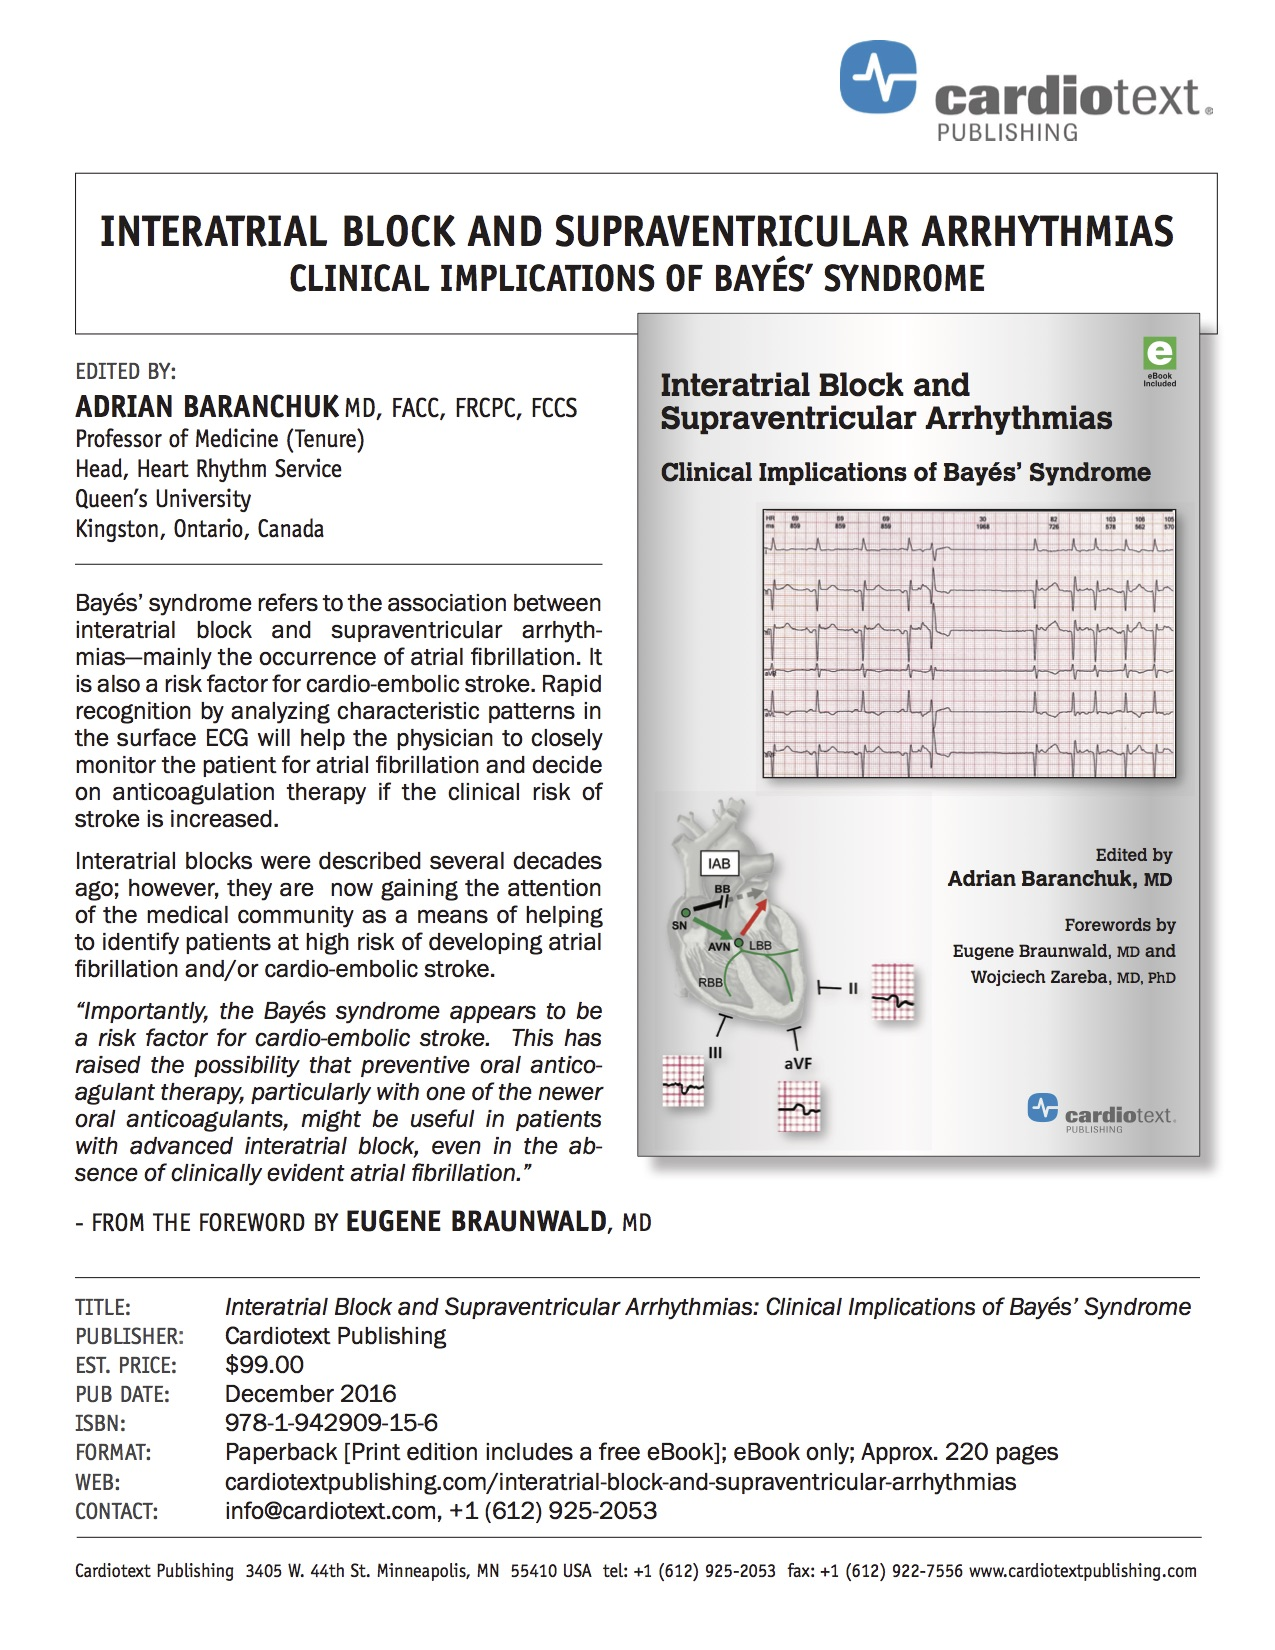 INTERATRIAL BLOCK AND SUPRAVENTRICULAR ARRHYTHMIAS CLINICAL IMPLICATIONS OF BAYÉS' SYNDROME